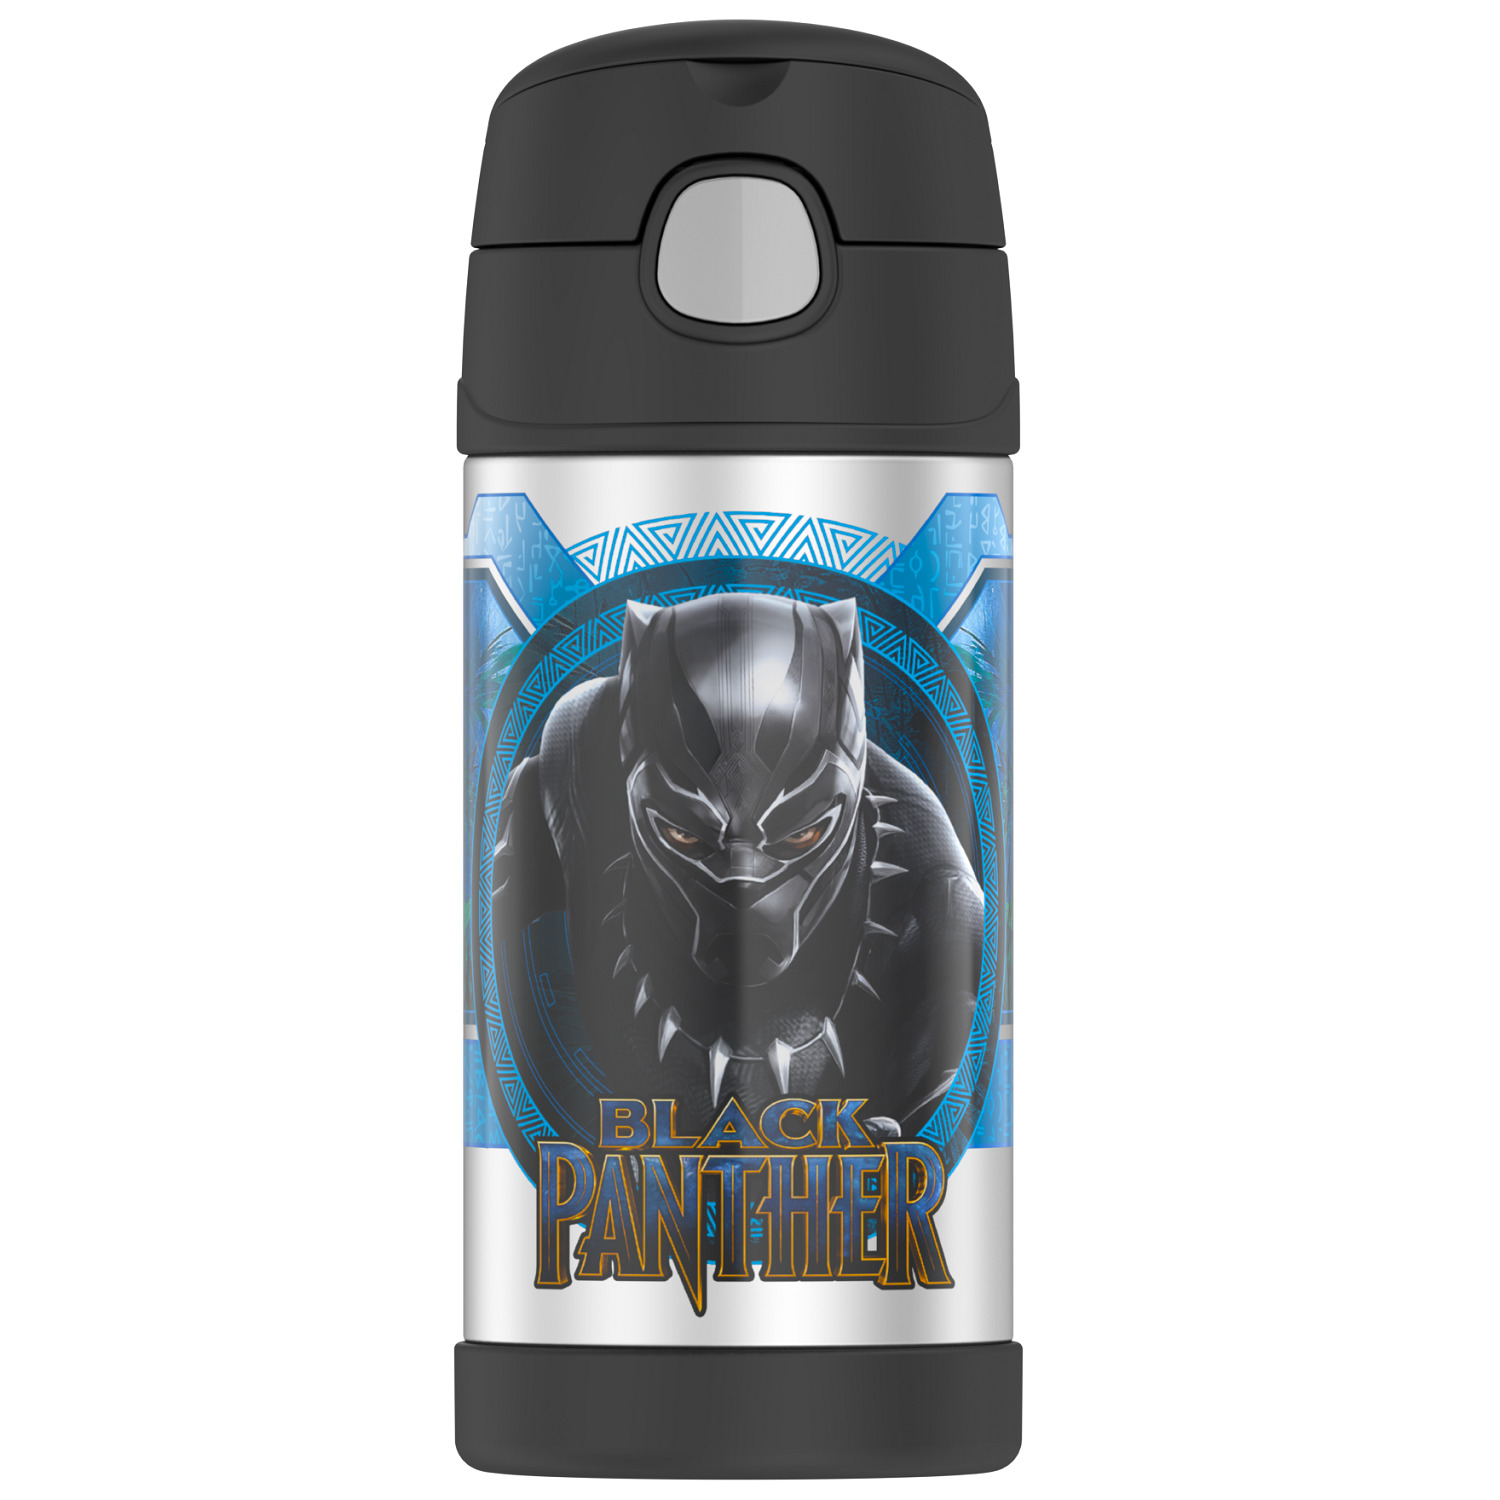 Thermos FUNtainer 12-ounce Vacuum Insulated Stainless Steel Bottle (Black Panther)